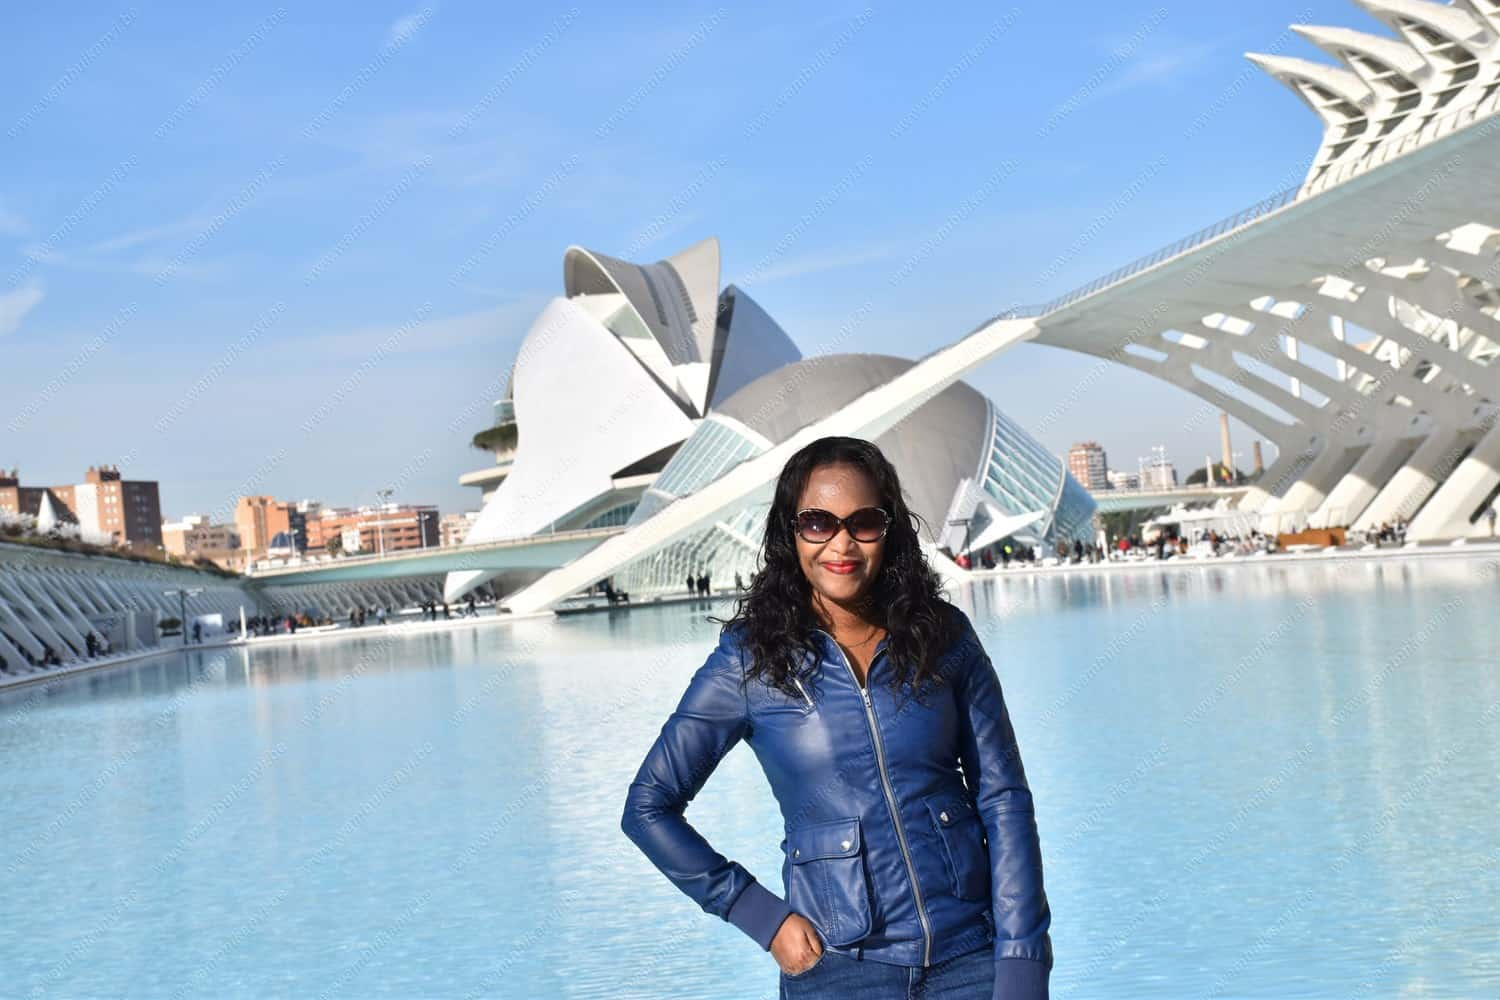 City of Arts and Sciences in Valencia Experience